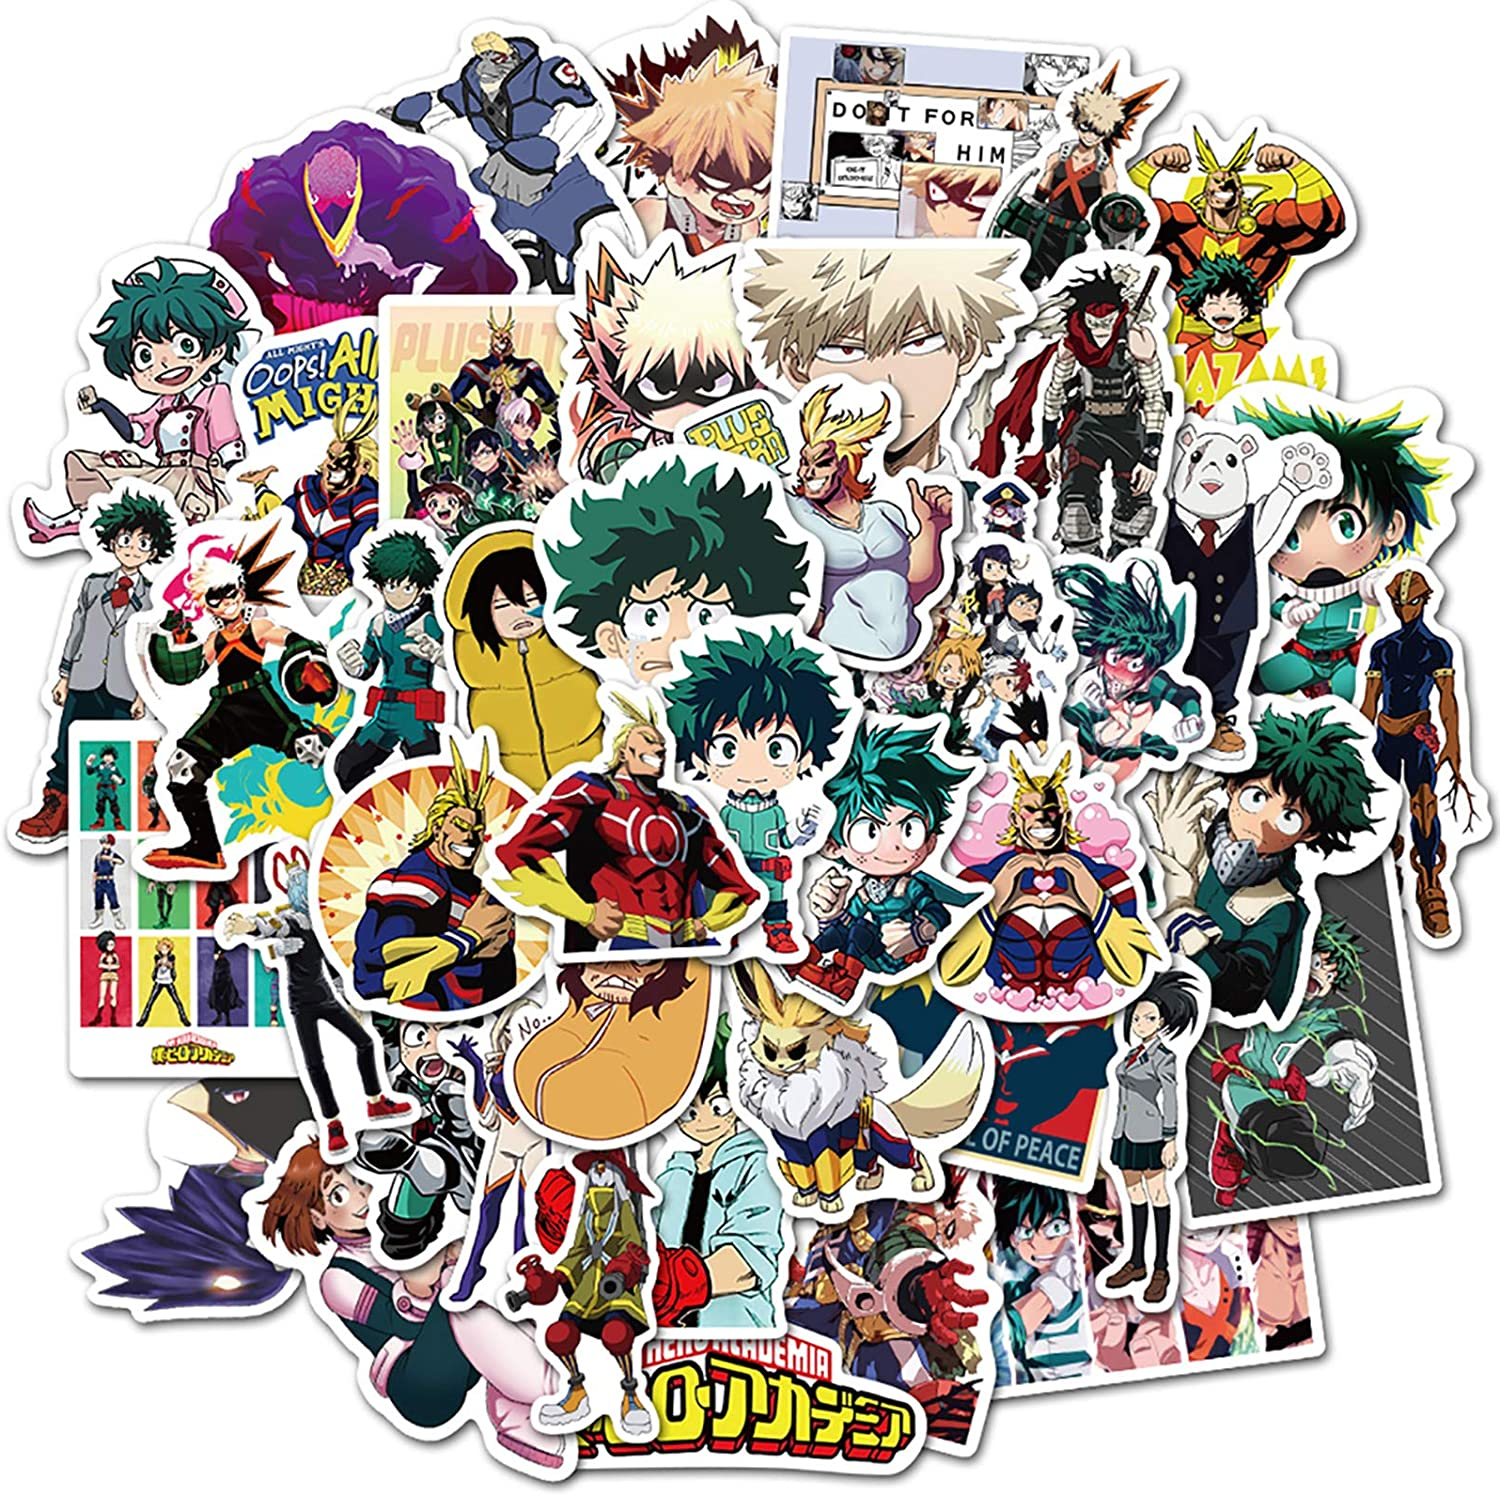 My Hero Academia Anime Stickers Pack of 50 for Laptop Hydro Flasks,Laptops,Computers, car,Water Bottles,scrapbooks,Waterproof Durable 100% Vinyl(My Hero Academia)